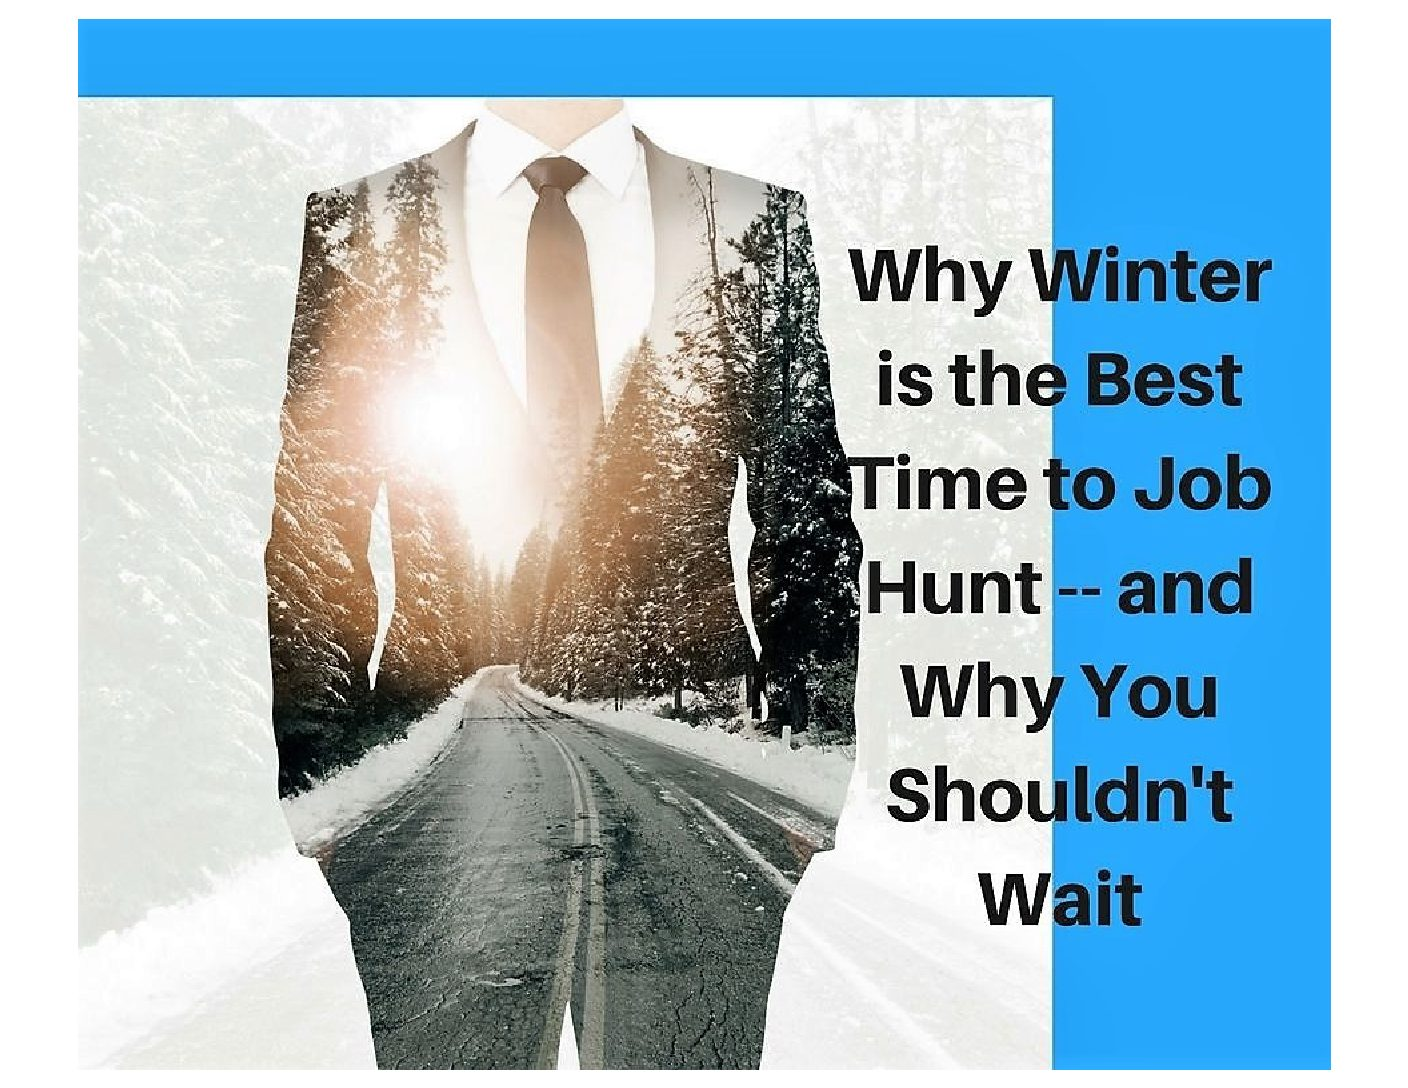 From reaching out to your network to getting professional help with cv or resume -- why you should job hunt in the winter.